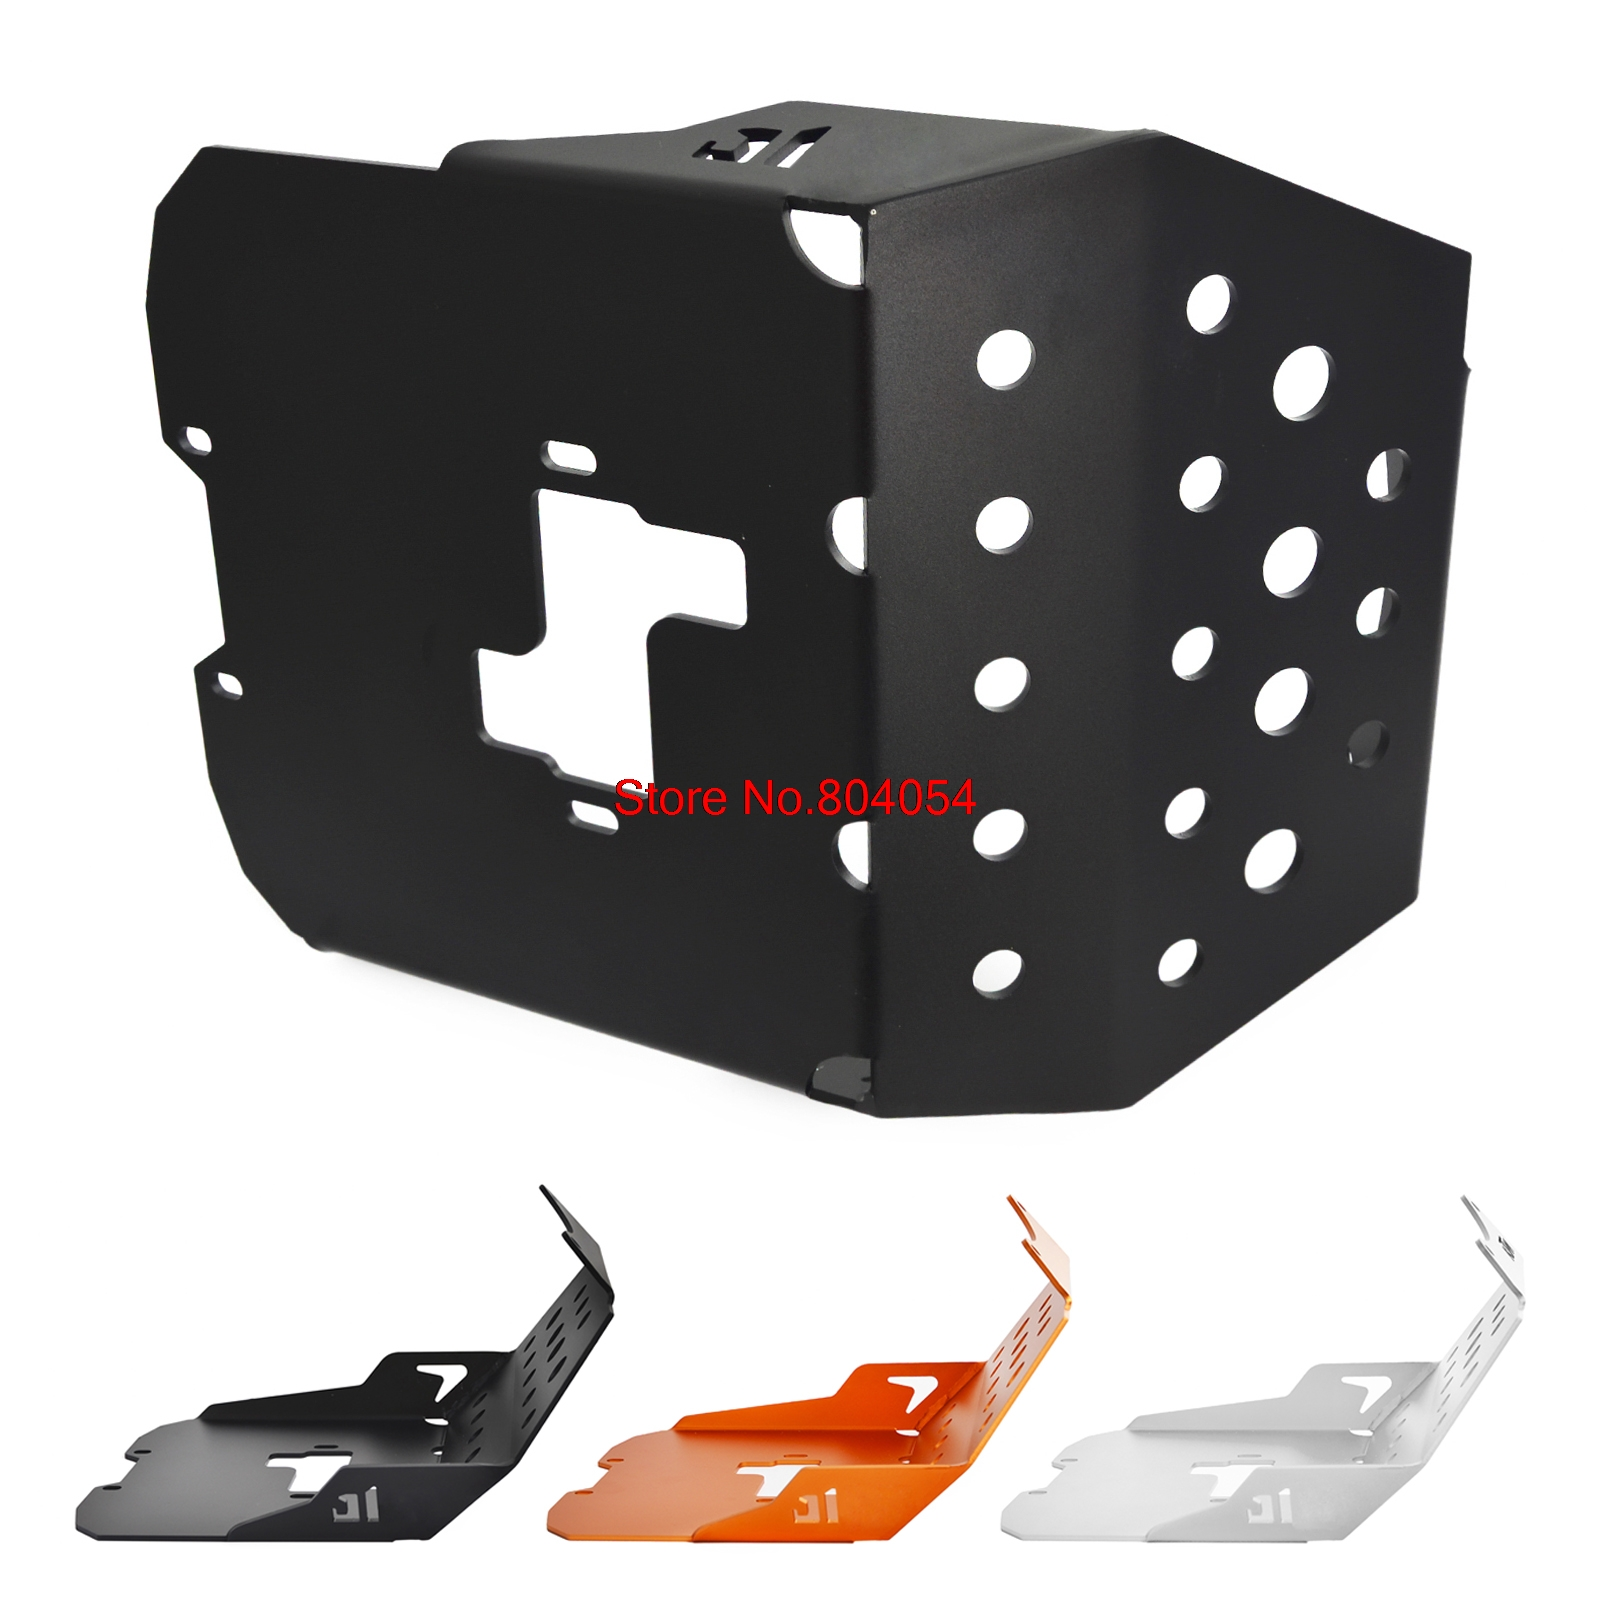 Motorcycle Engine Glide Plate Skid Plate For KTM Duke 250 2015 2016 Duke 390 2013 2014 2015 2016 Duke250 Duke390 motorcycle rear brake master cylinder reservoir cove for ktm duke 125 200 390 rc200 rc390 2012 2013 2014